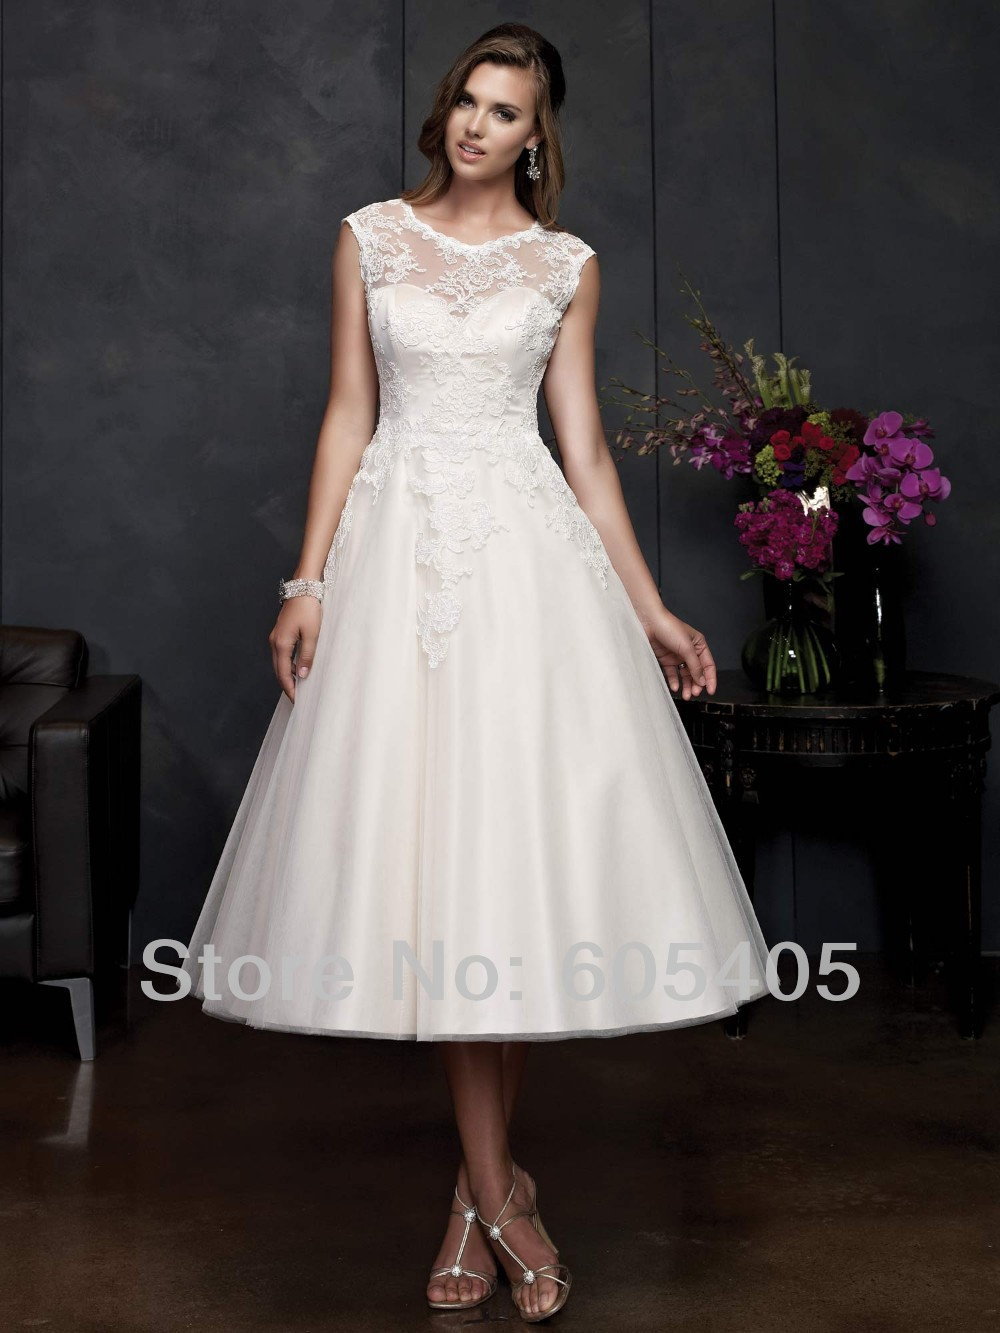 Elegant A Line Mid Length Wedding Dresses With Cap Sleeves See